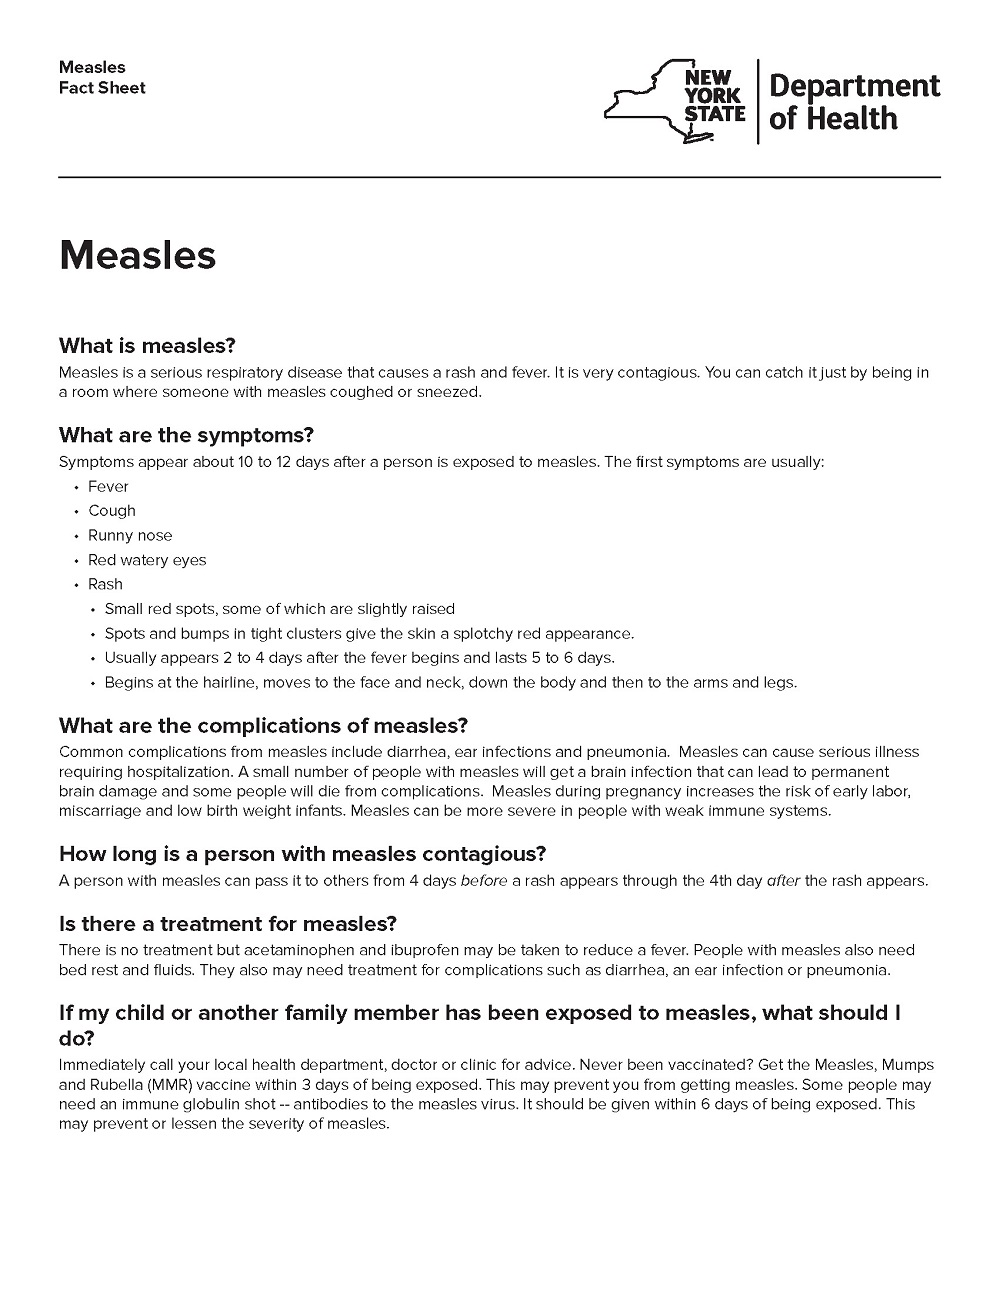 Measles Fact Sheet